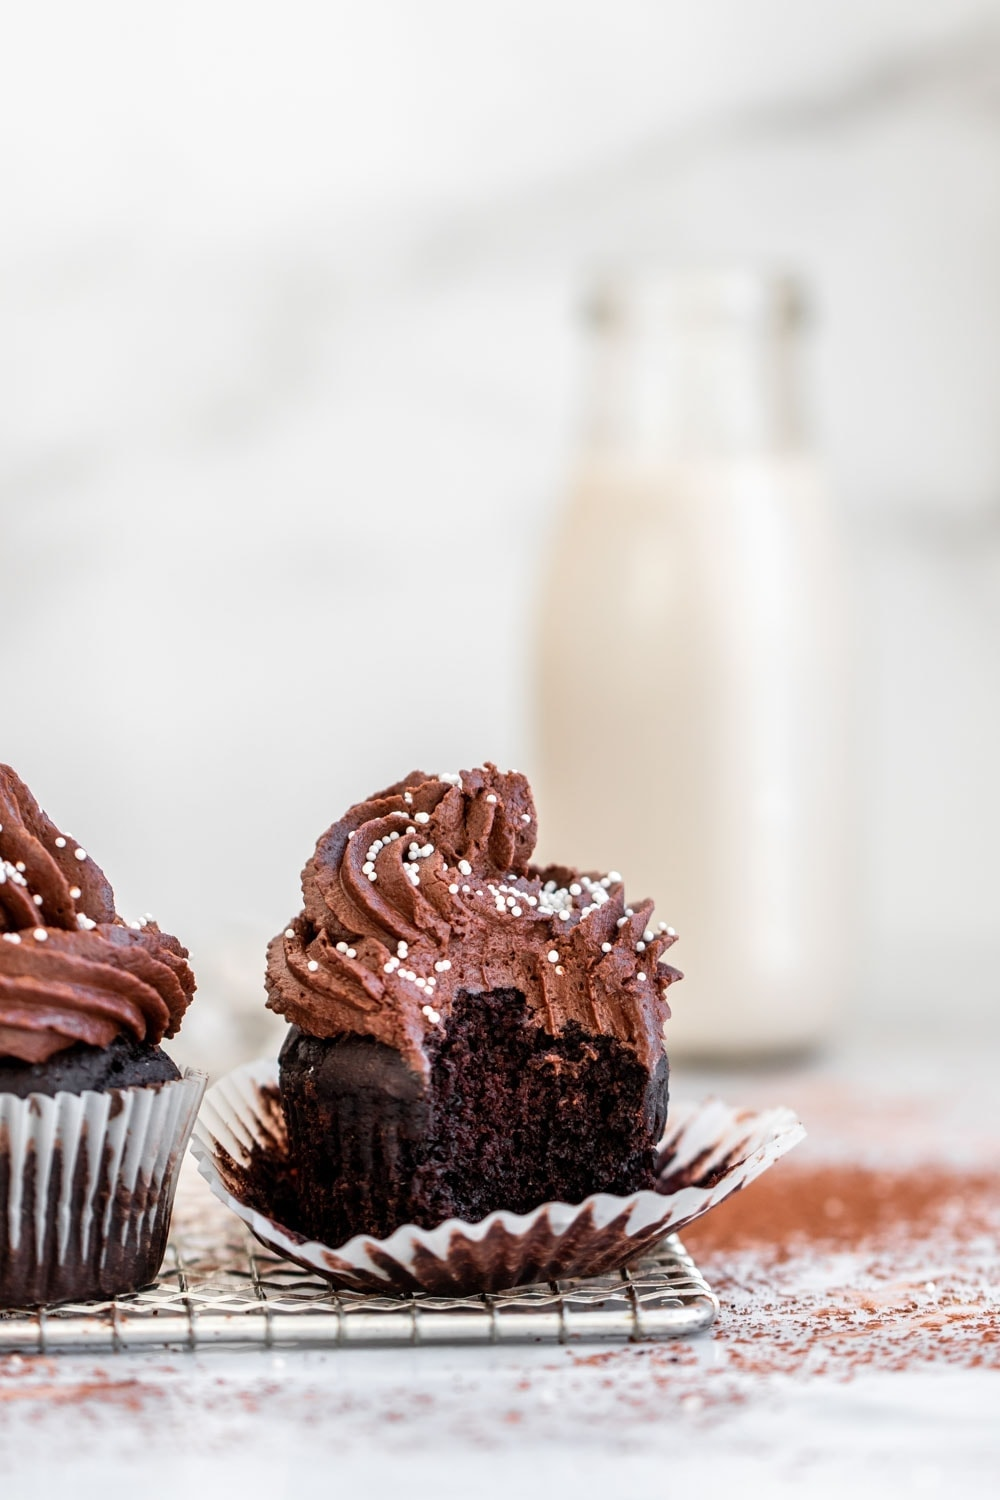 Gluten free chocolate cupcakes with a bite taken out.